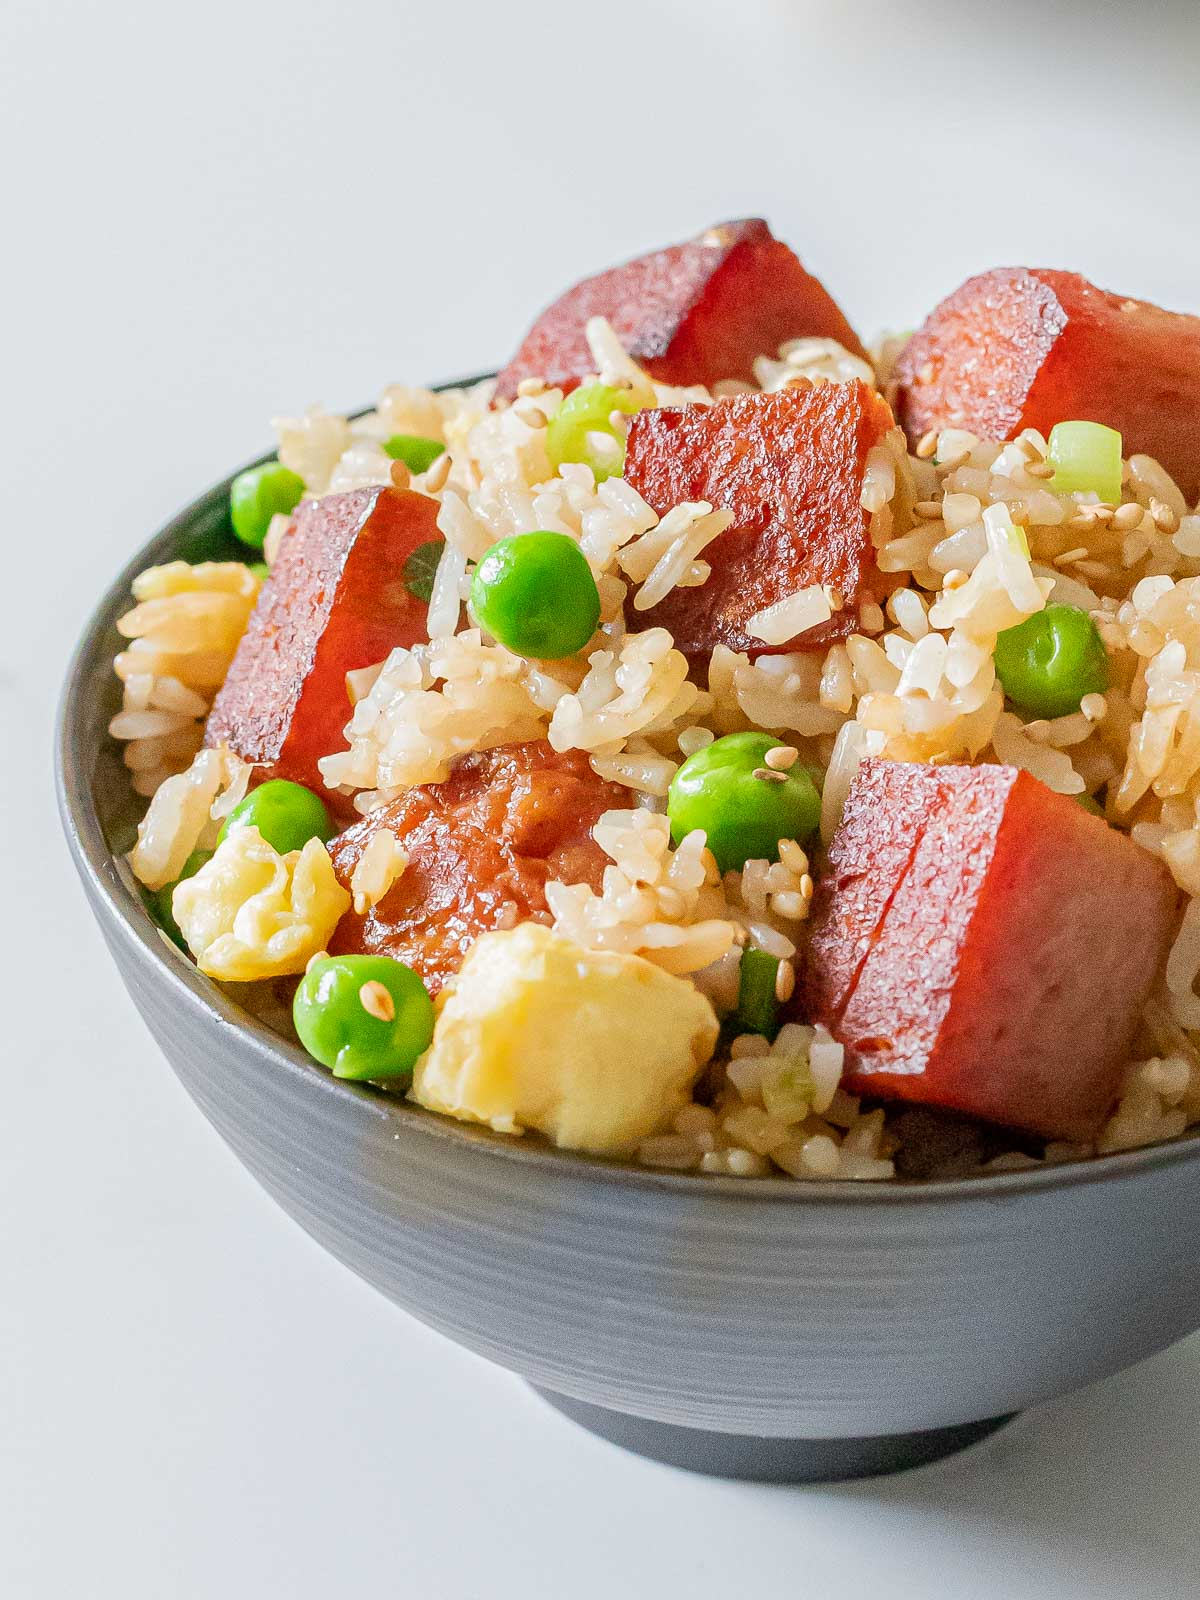 bowl of spam fried rice with eggs, green peas, and crispy cubes of spam